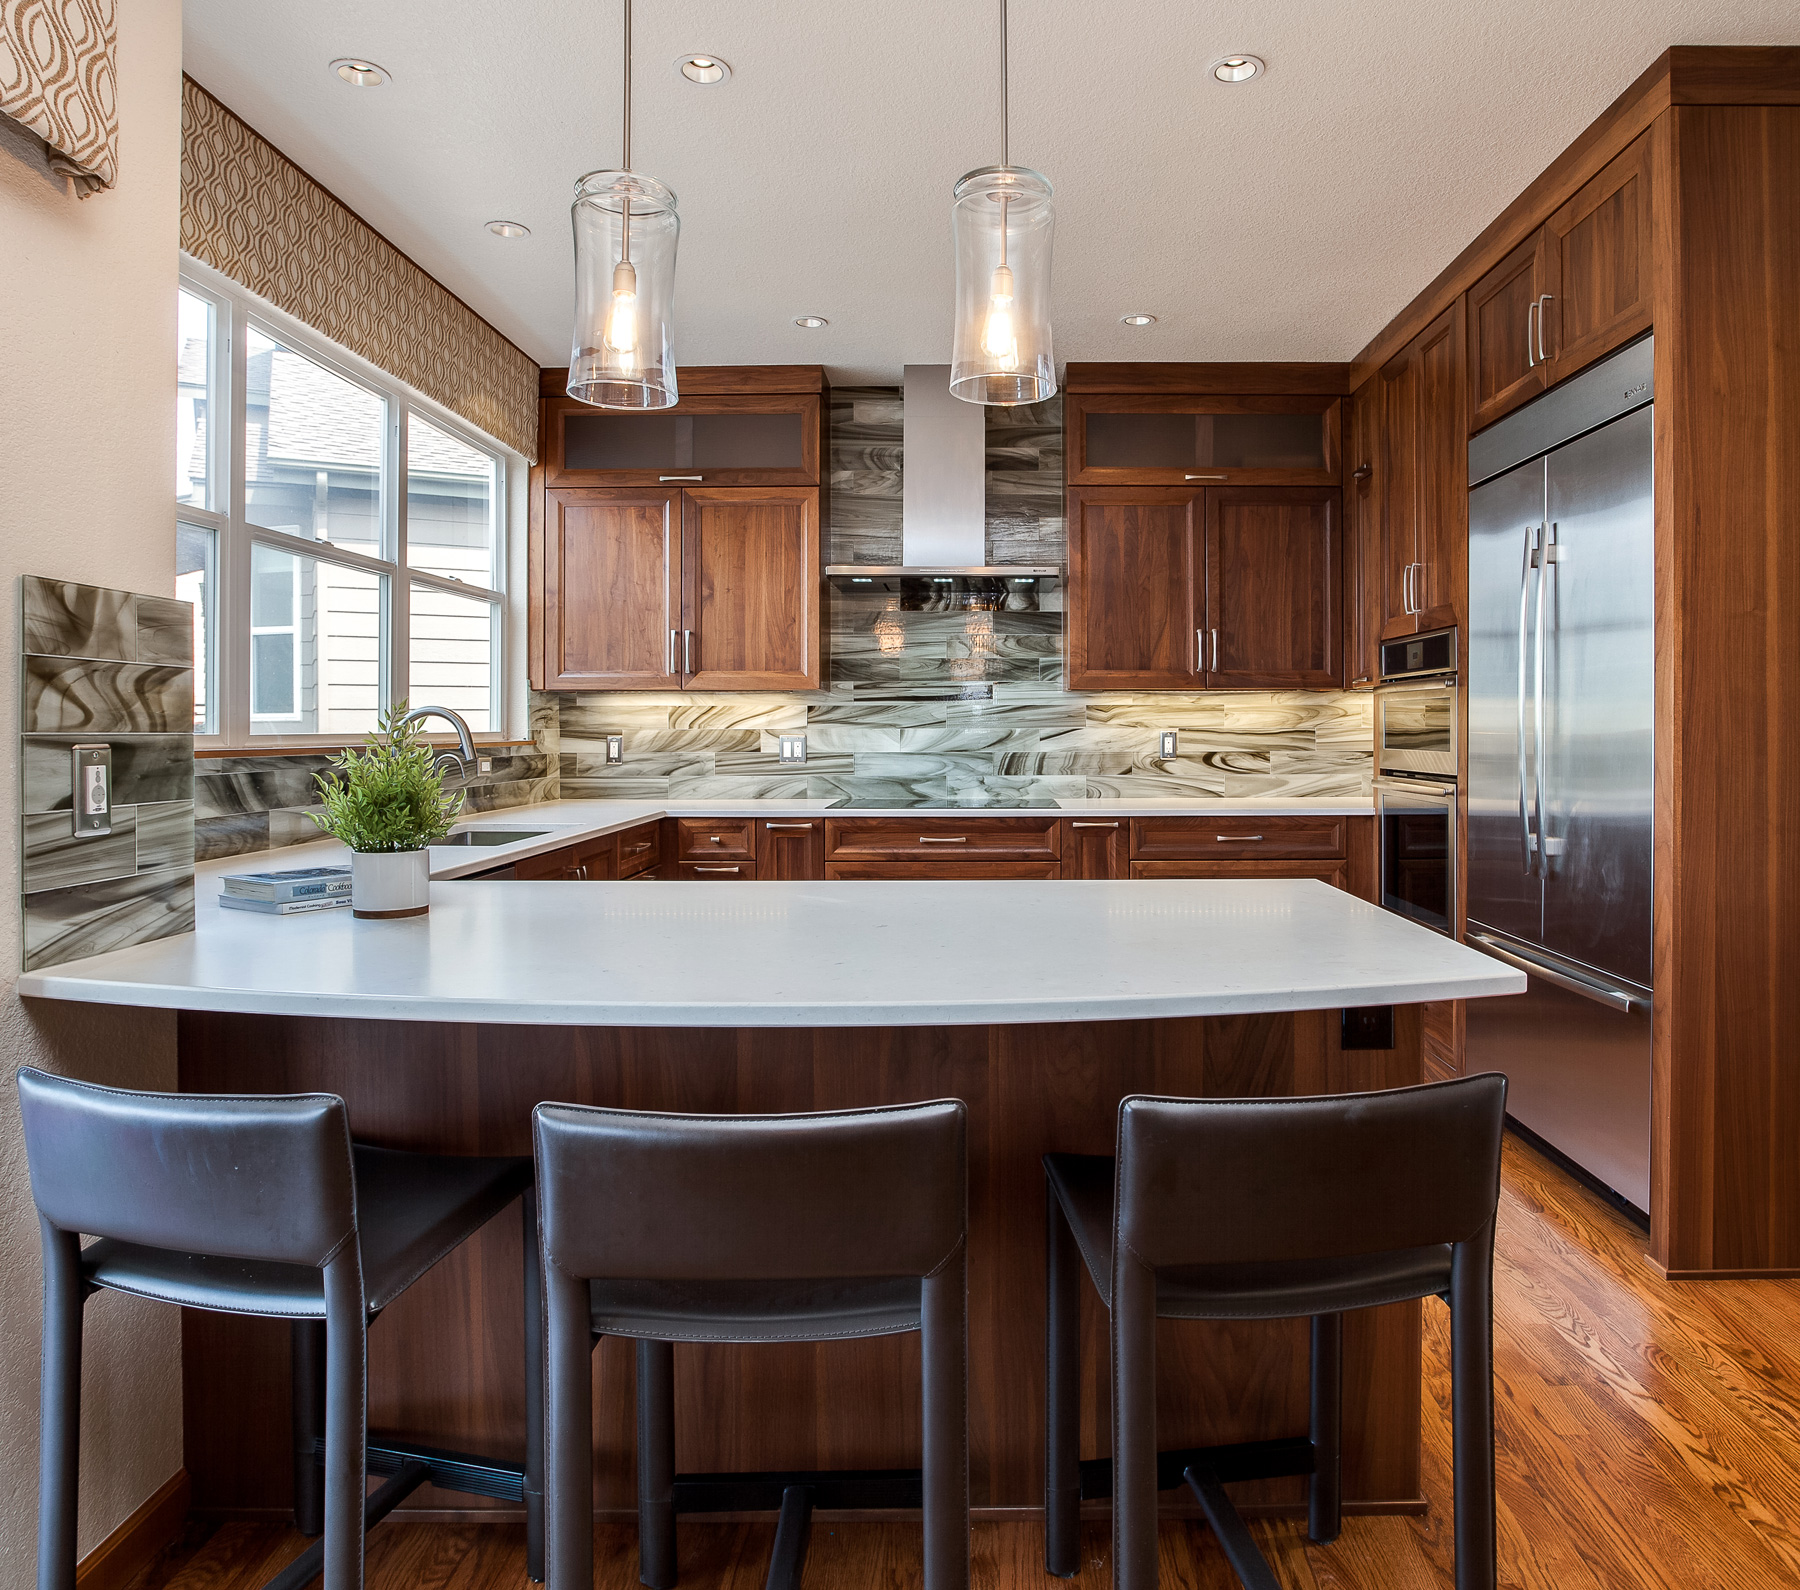 Remodeled Kitchens With White Cabinets: Beautiful Transitional Modern Kitchen Remodel